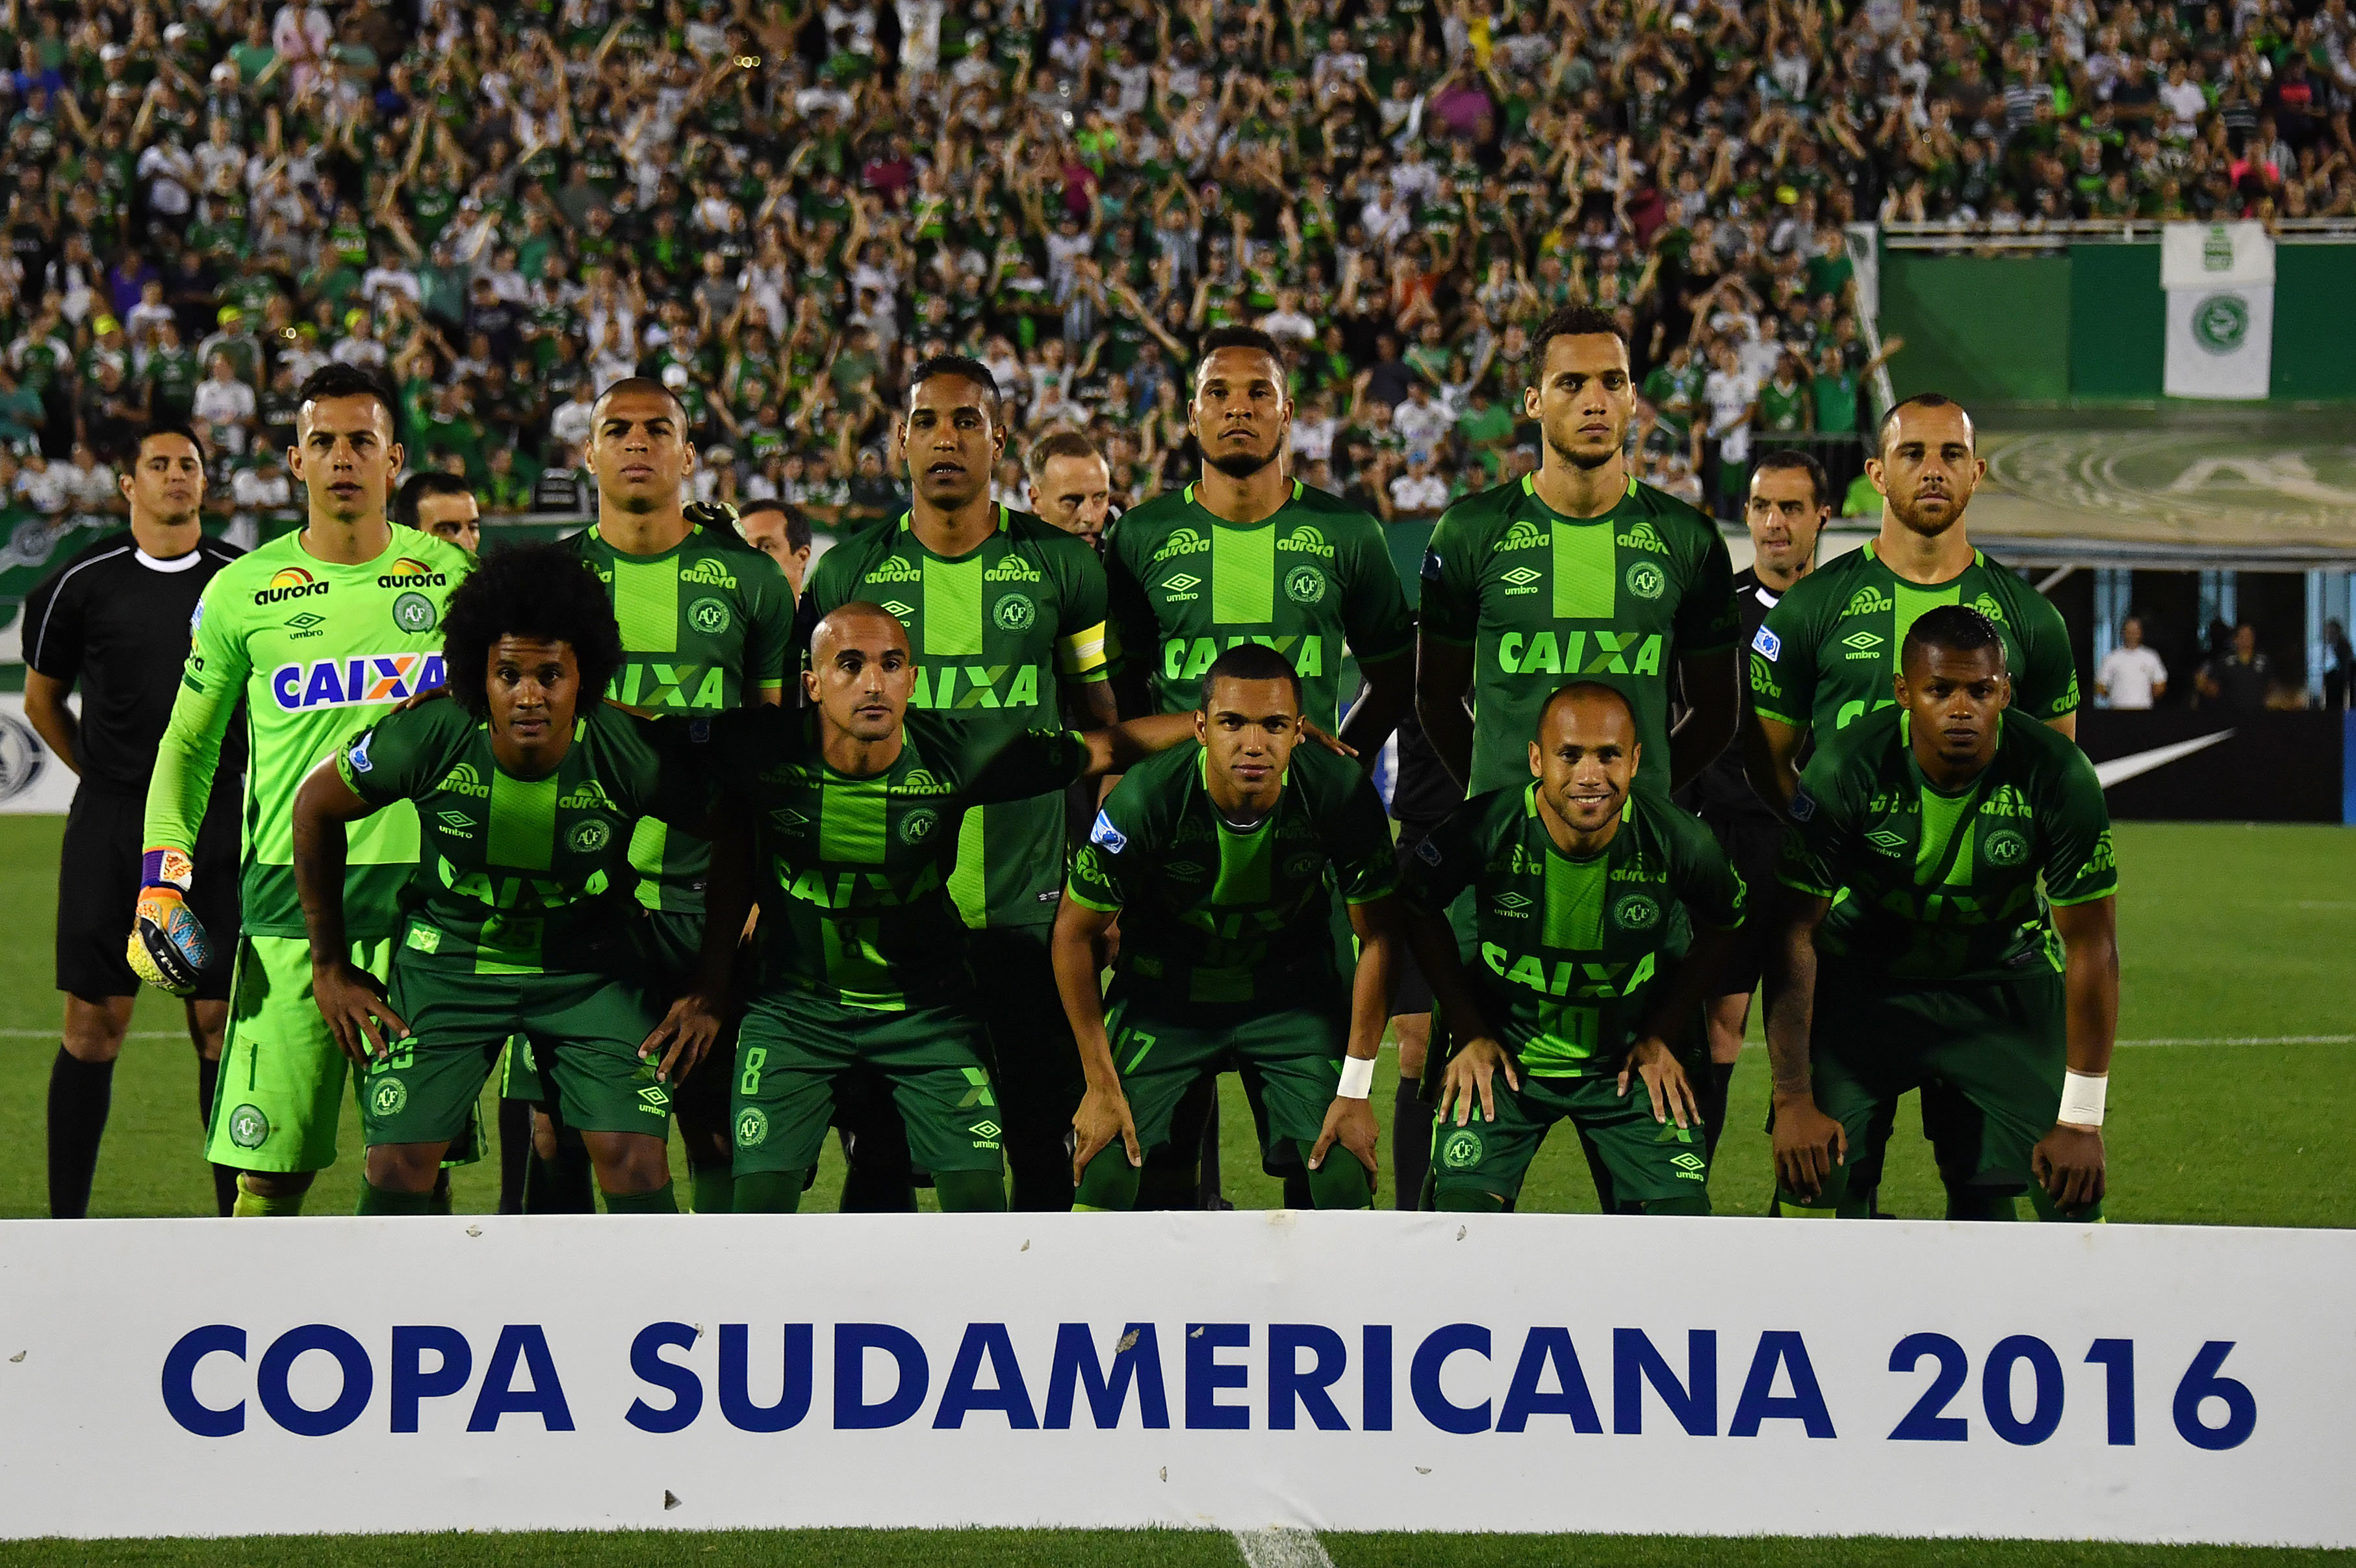 (FILES) This file photo taken on November 23, 2016 shows Brazil's Chapecoense players posing for pictures during their 2016 Copa Sudamericana semifinal second leg football match against Argentina's San Lorenzo  held at Arena Conda stadium, in Chapeco, Brazil.A plane carrying 81 people, including members of a Brazilian football team, crashed late on November 28, 2016 near the Colombian city of Medellin, officials said. The airport that serves Medellin said that among the 72 passengers and nine crew were members of Chapecoense Real, a Brazilian football club that was supposed to play against Colombia's Atletico Nacional Wednesday in the South American Cup finals.   / AFP PHOTO / NELSON ALMEIDA